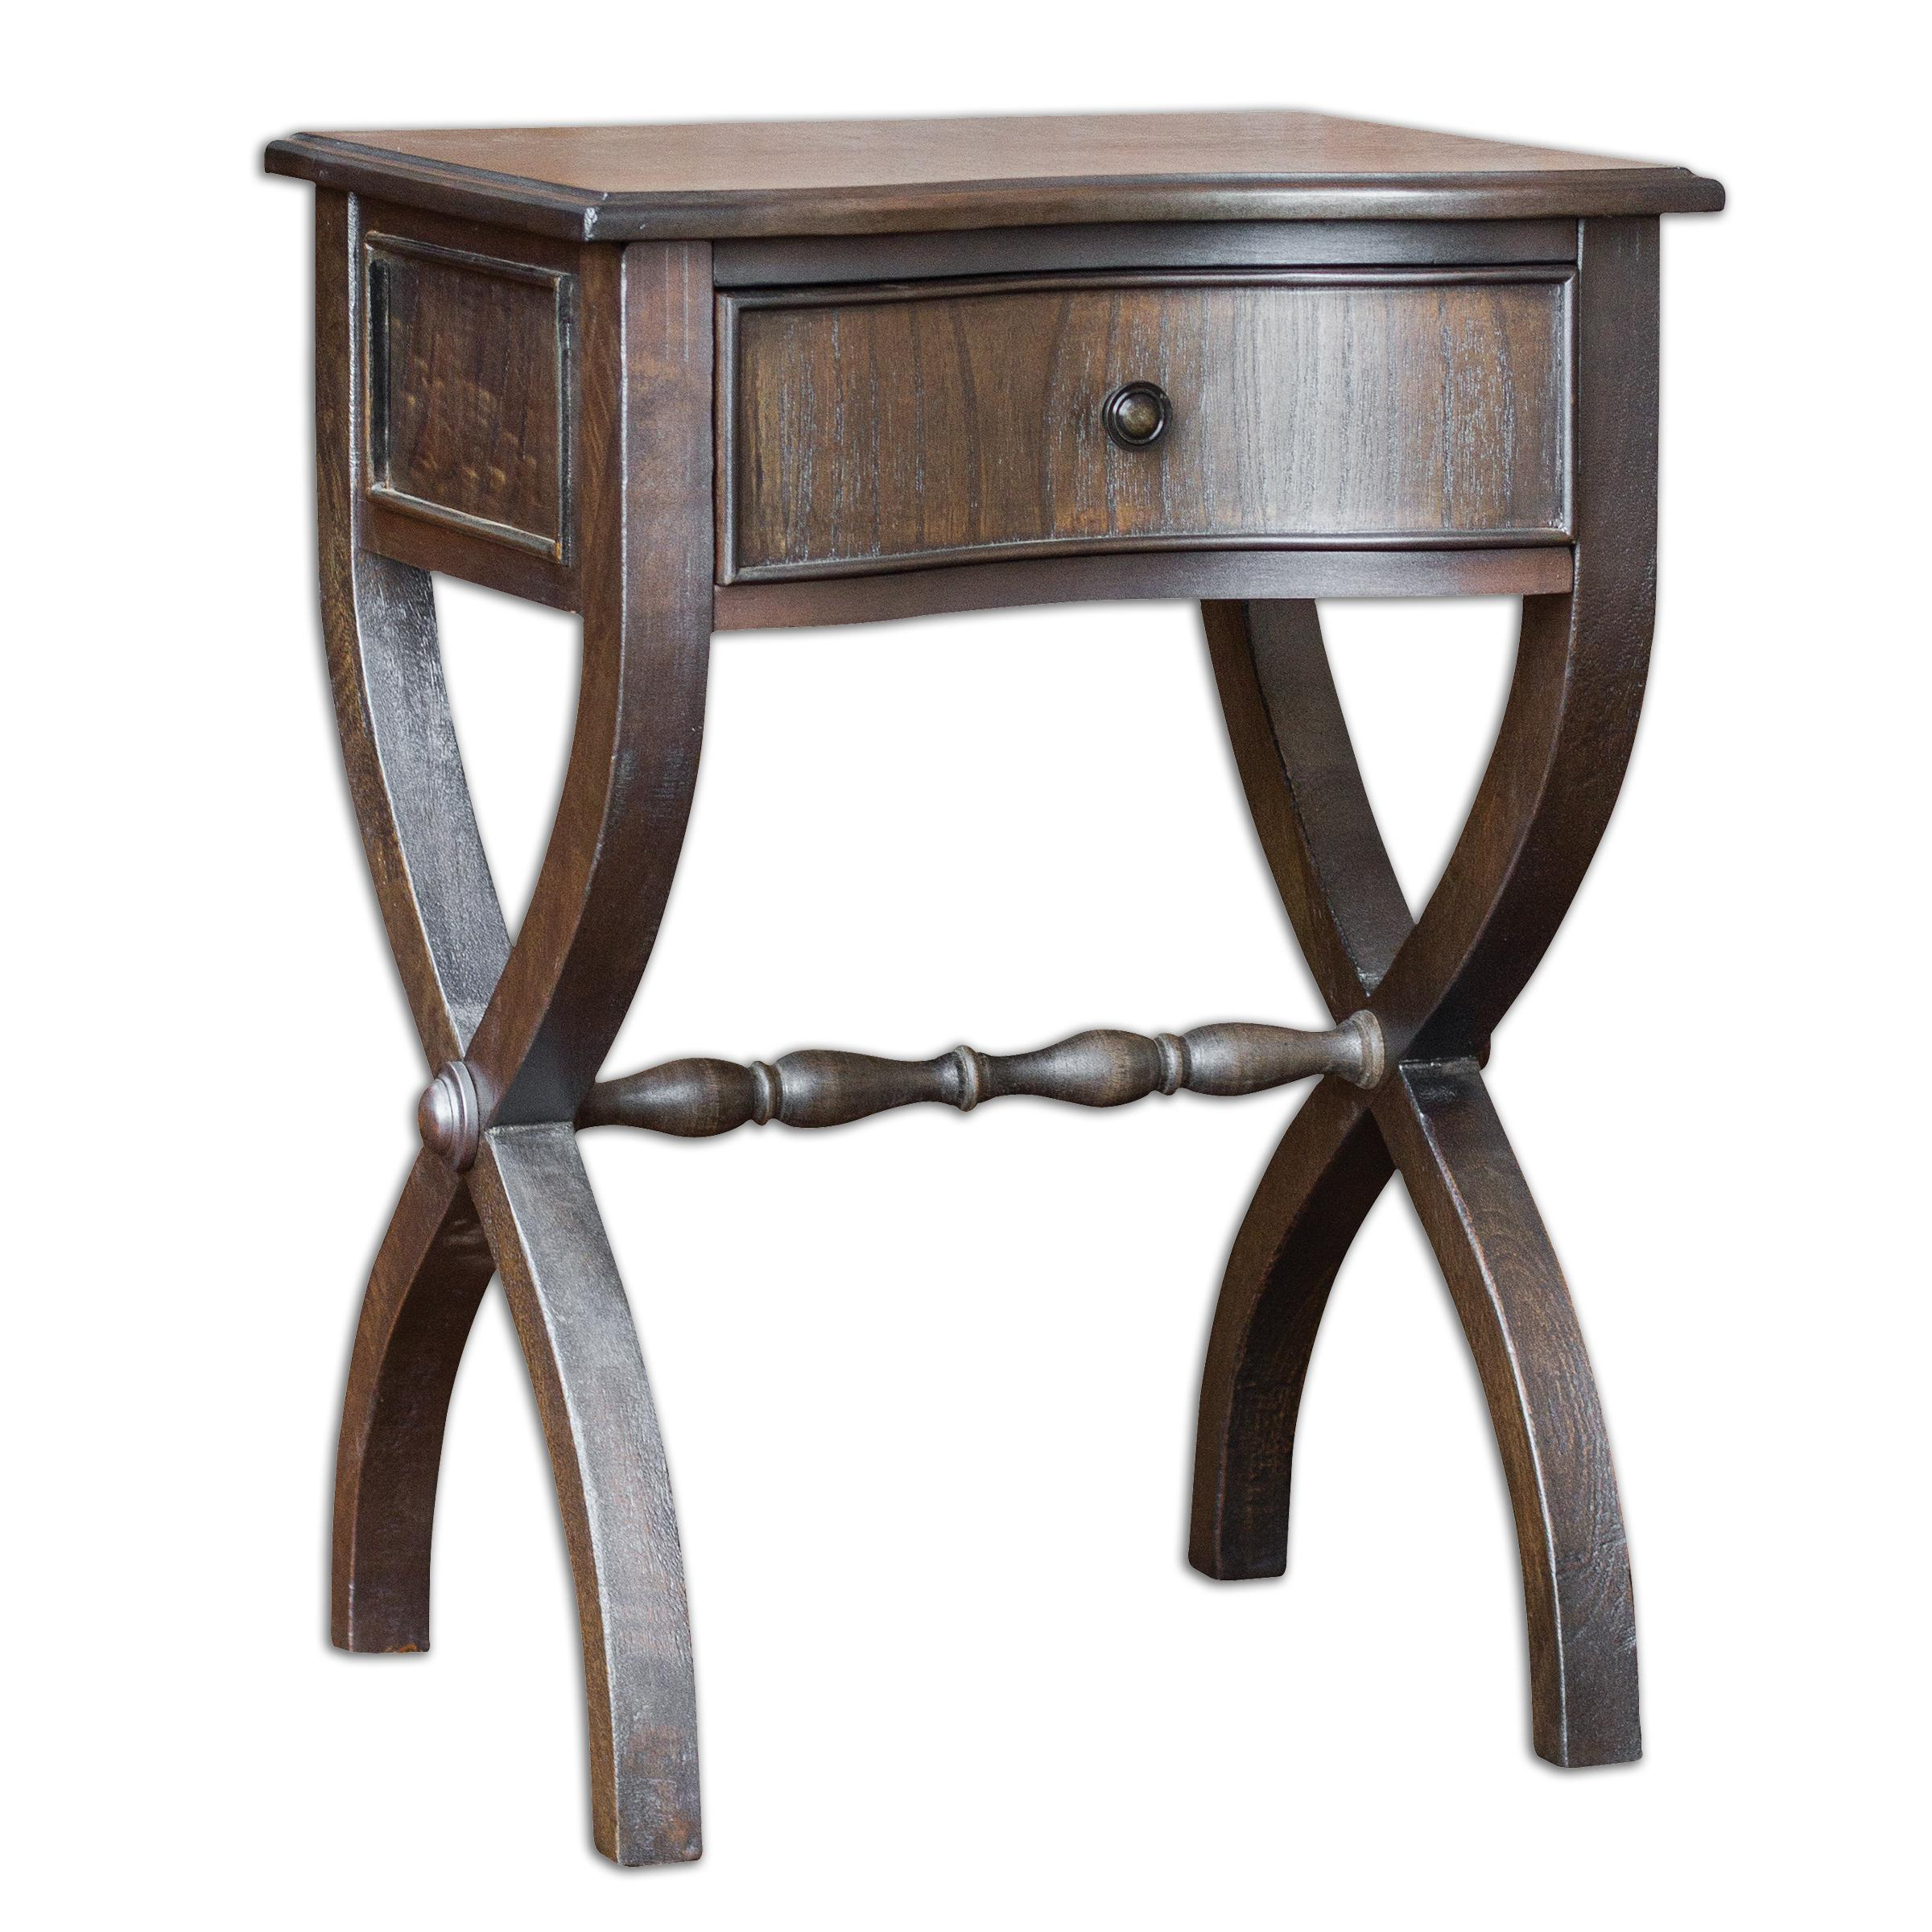 Uttermost Accent Furniture Nolea Accent Table - Item Number: 25638